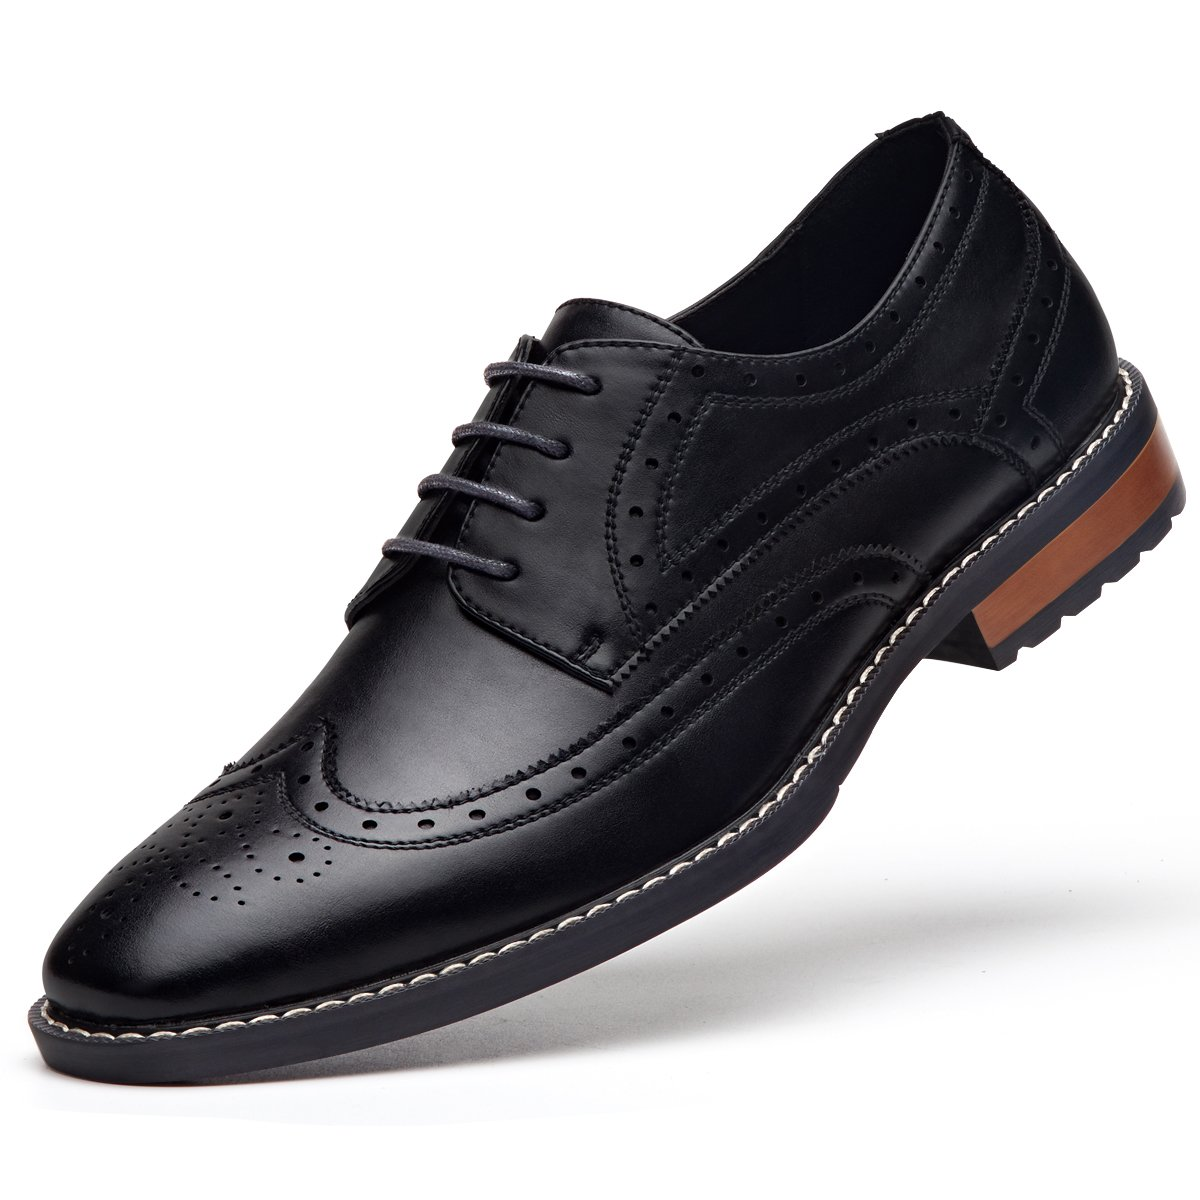 Men's Leather Oxford Dress Shoes Formal Wing-Tip Lace up Derby Shoes Black 10 by GM GOLAIMAN